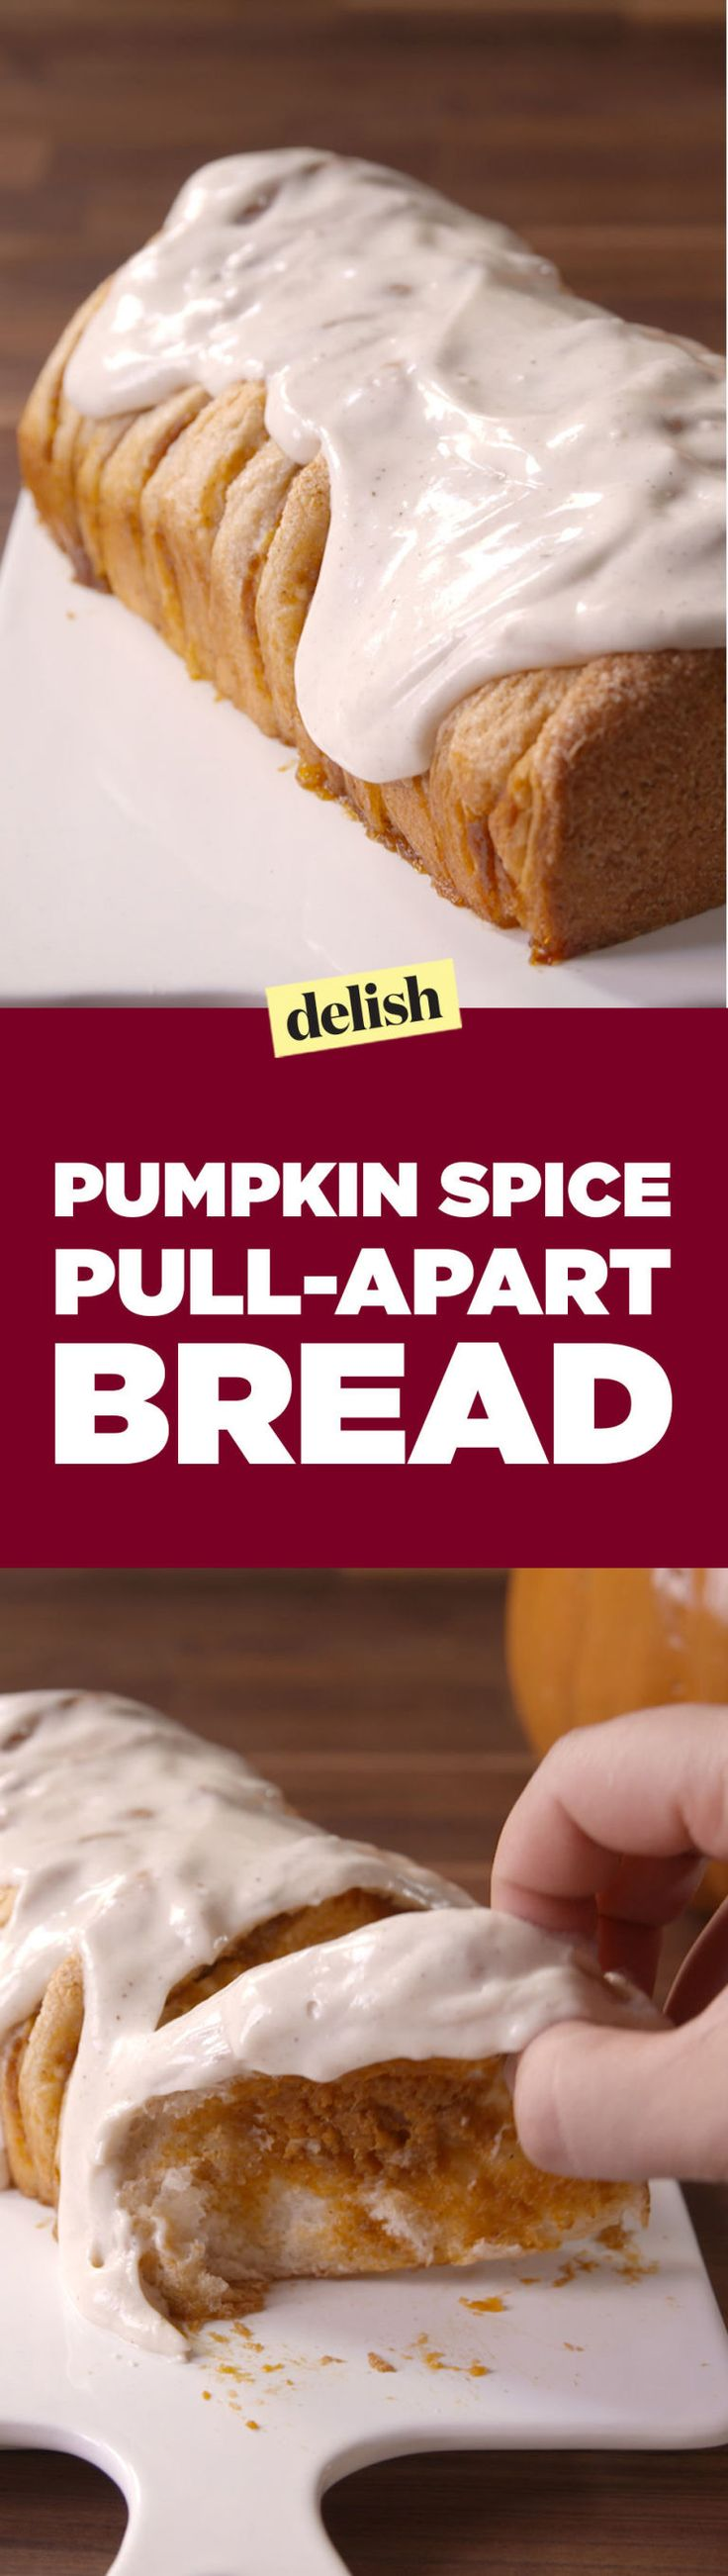 Even Pumpkin Haters Can't Resist This Pumpkin Spice Pull-Apart Bread  - Delish.com